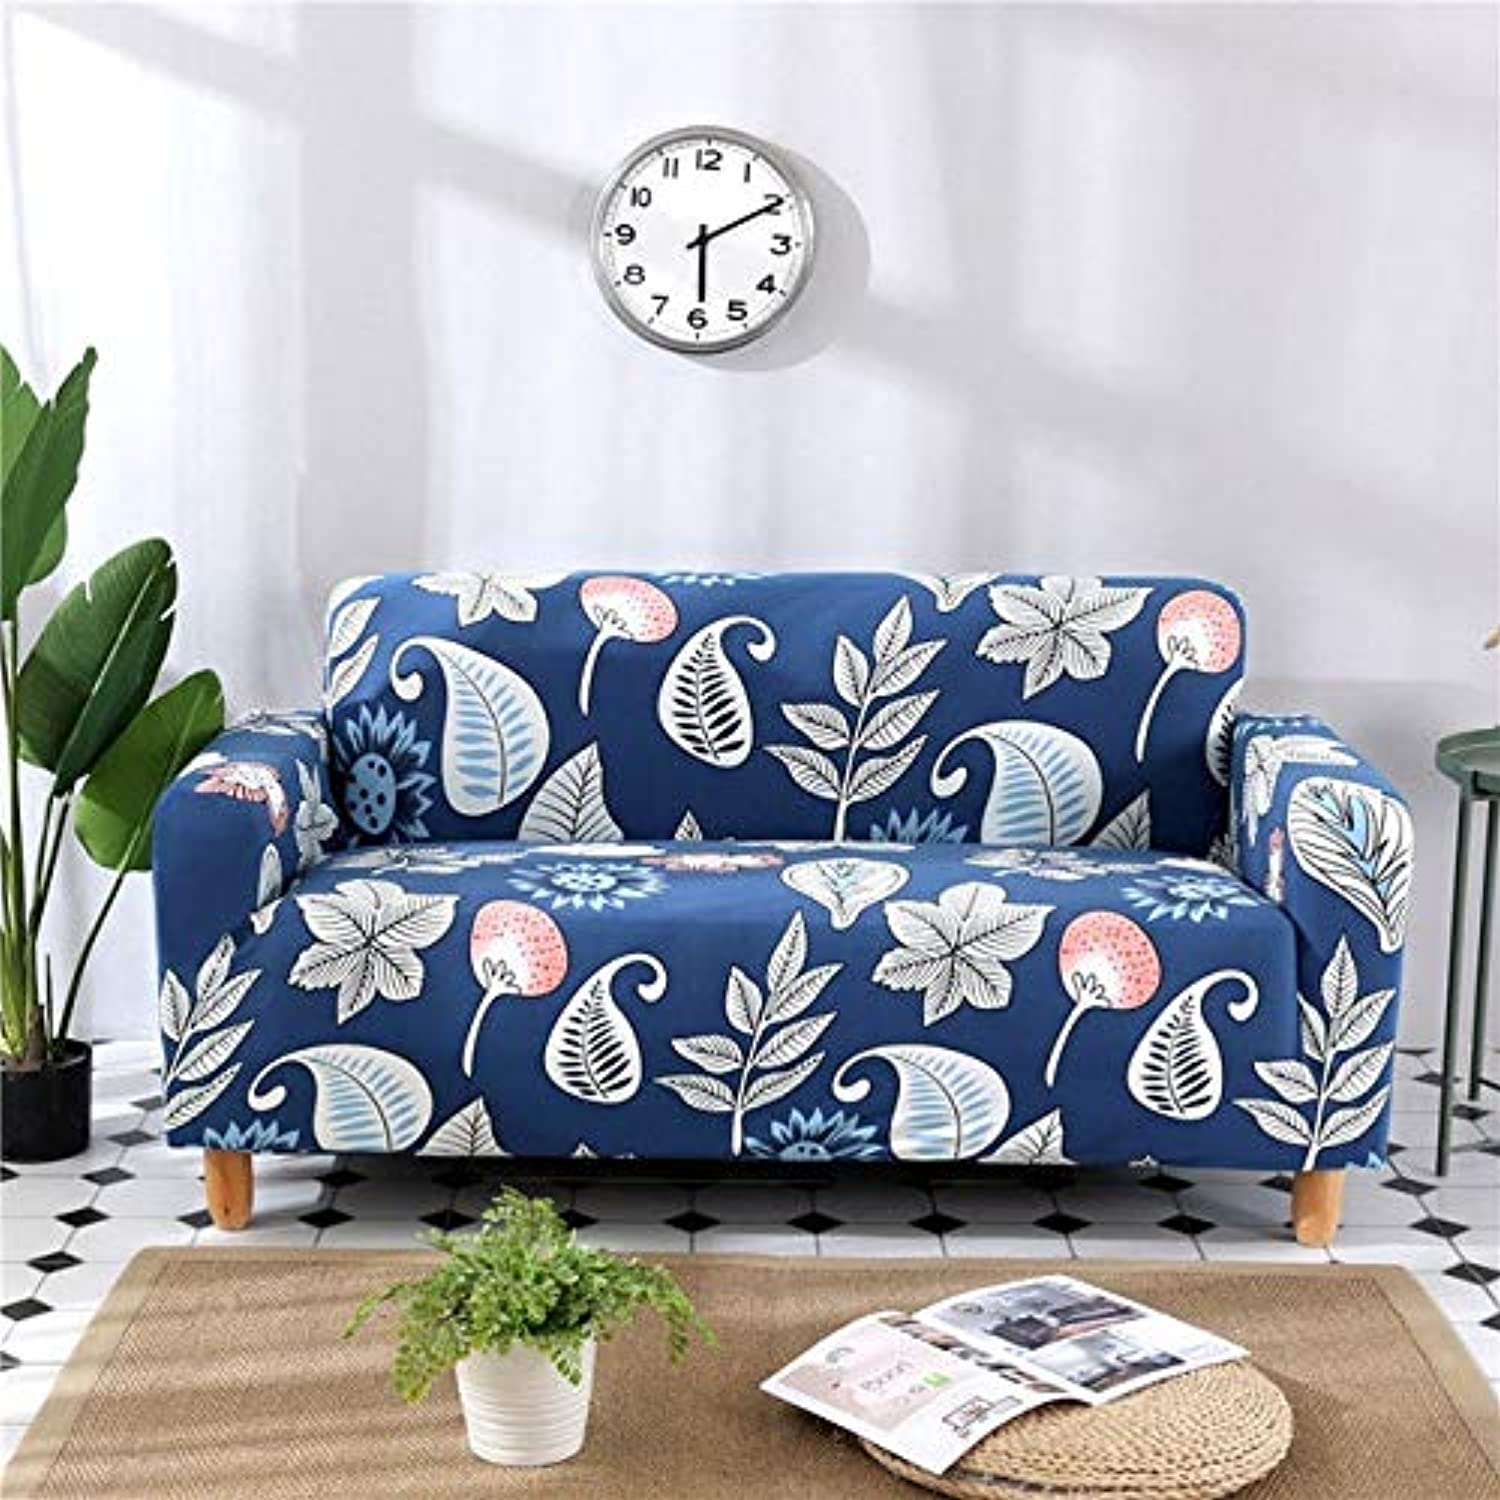 Elastic Sofa Cover Set for Living Room Sofa Towel SlipResistant Sofa Covers for Pets Strech Sofa Slipcover   colour16, 2pc Cushion Cover